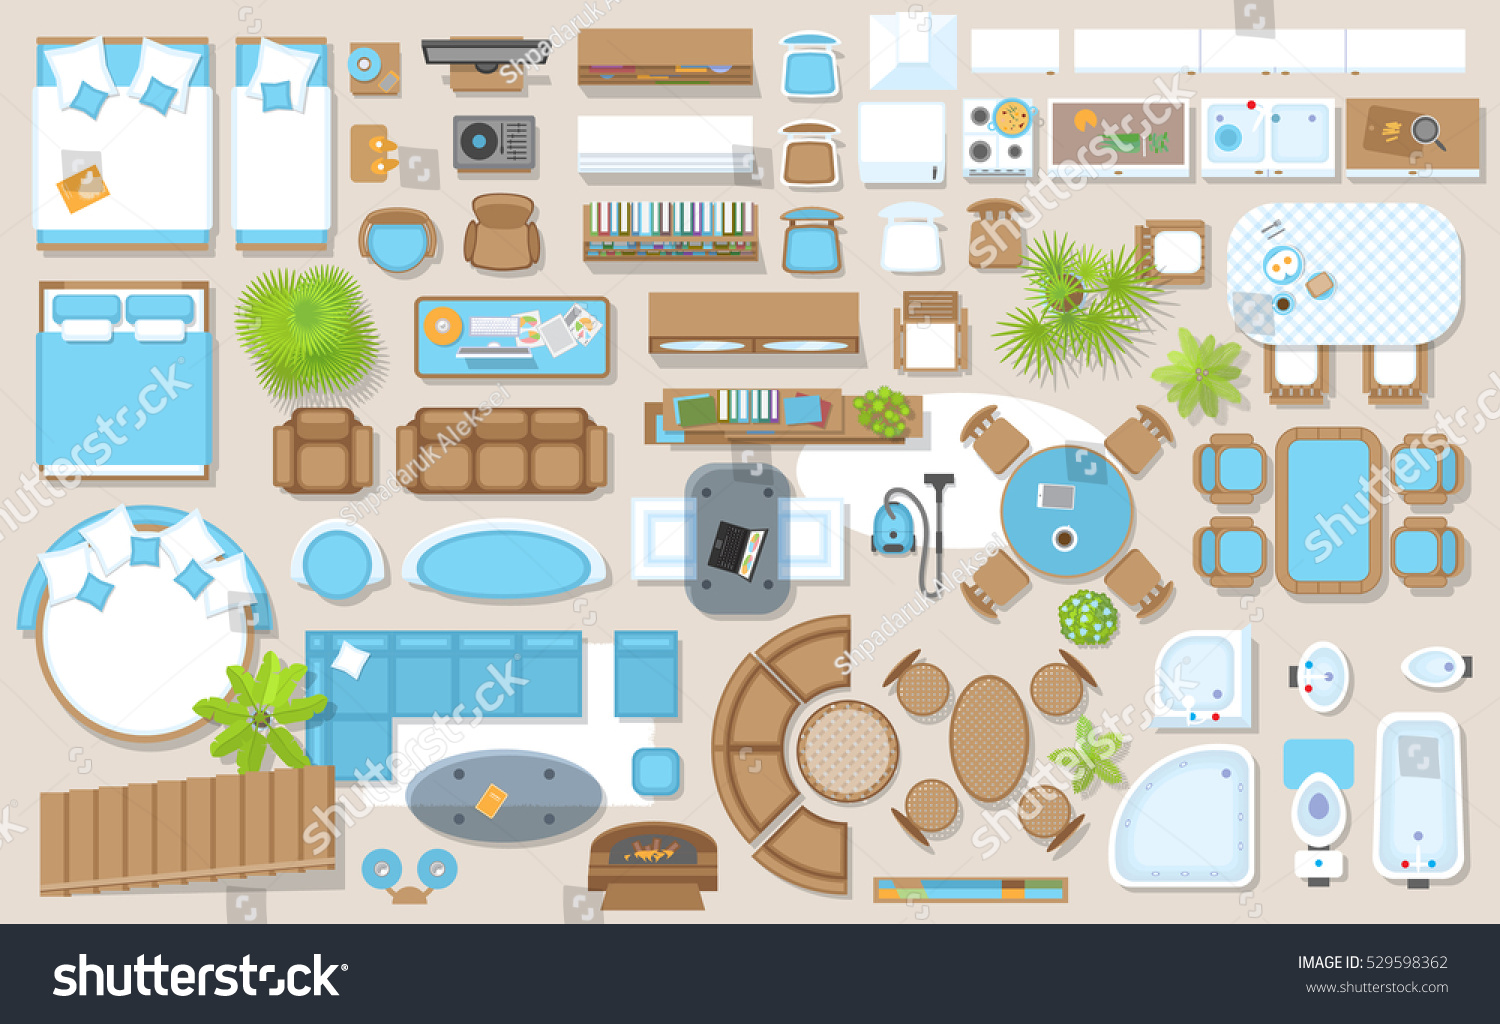 Living Room Top View Png Thecreativescientist Com